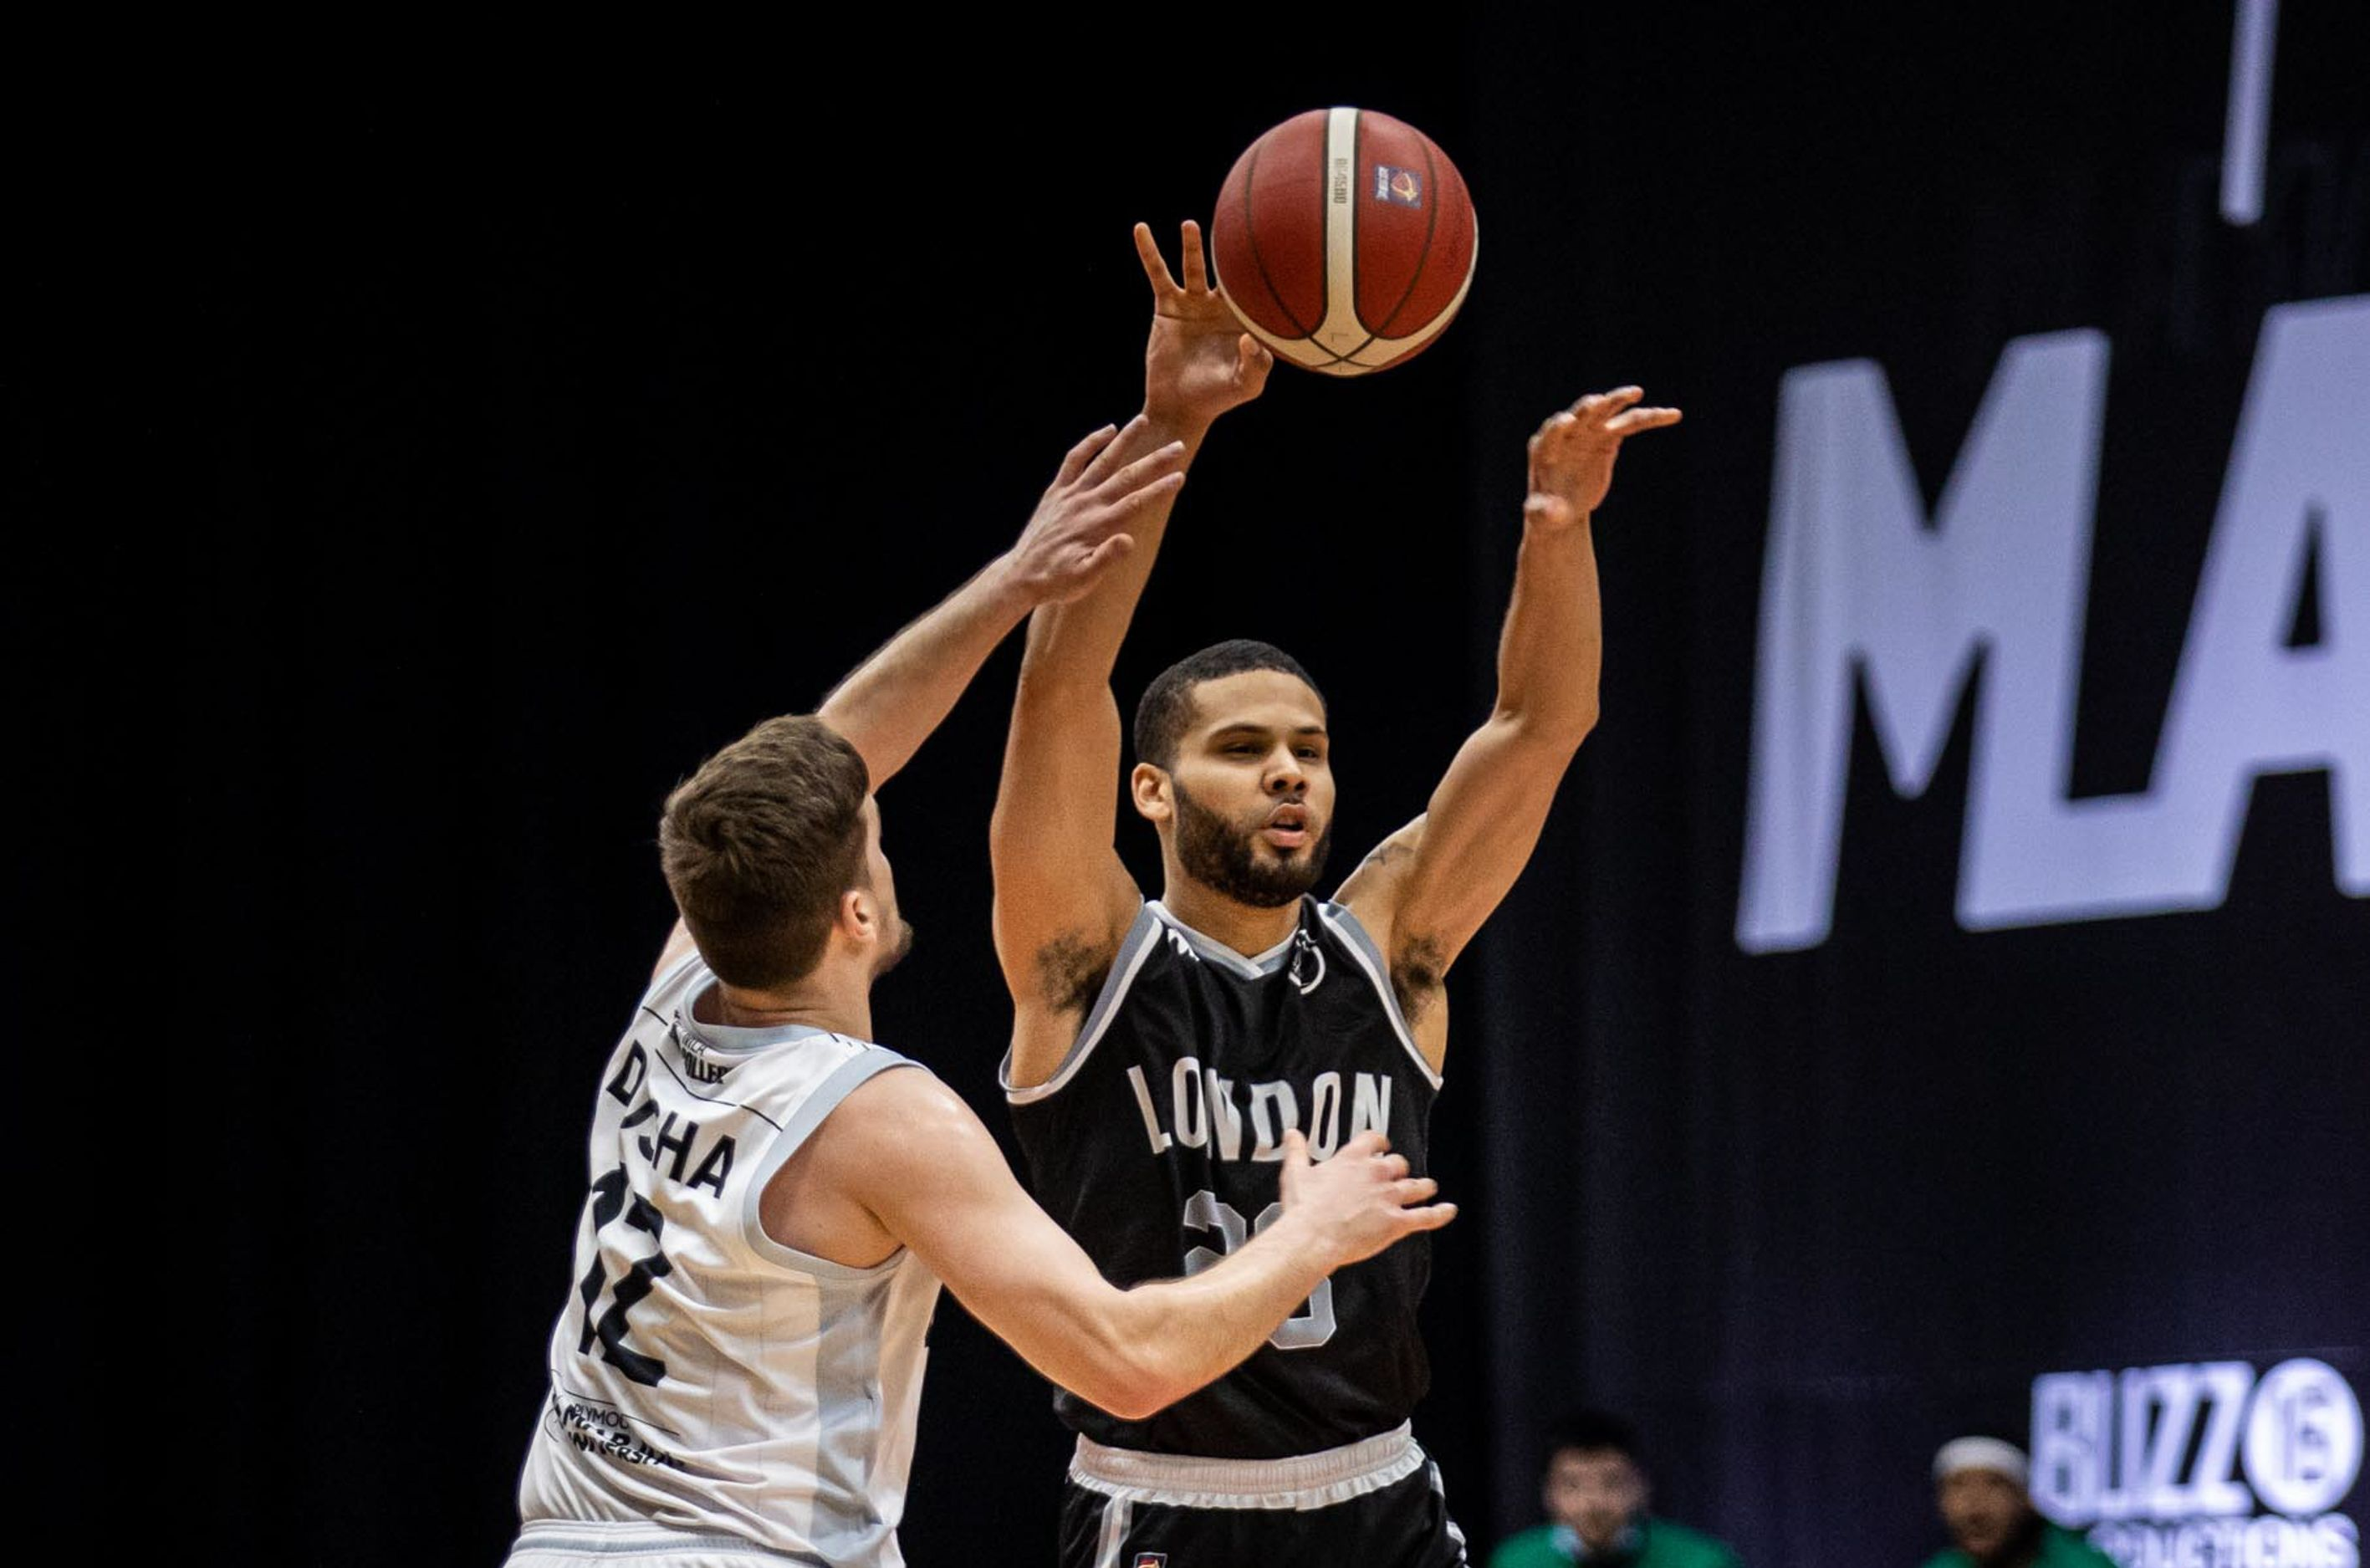 Jordan Spencer confirmed to remain with the London Lions for another season